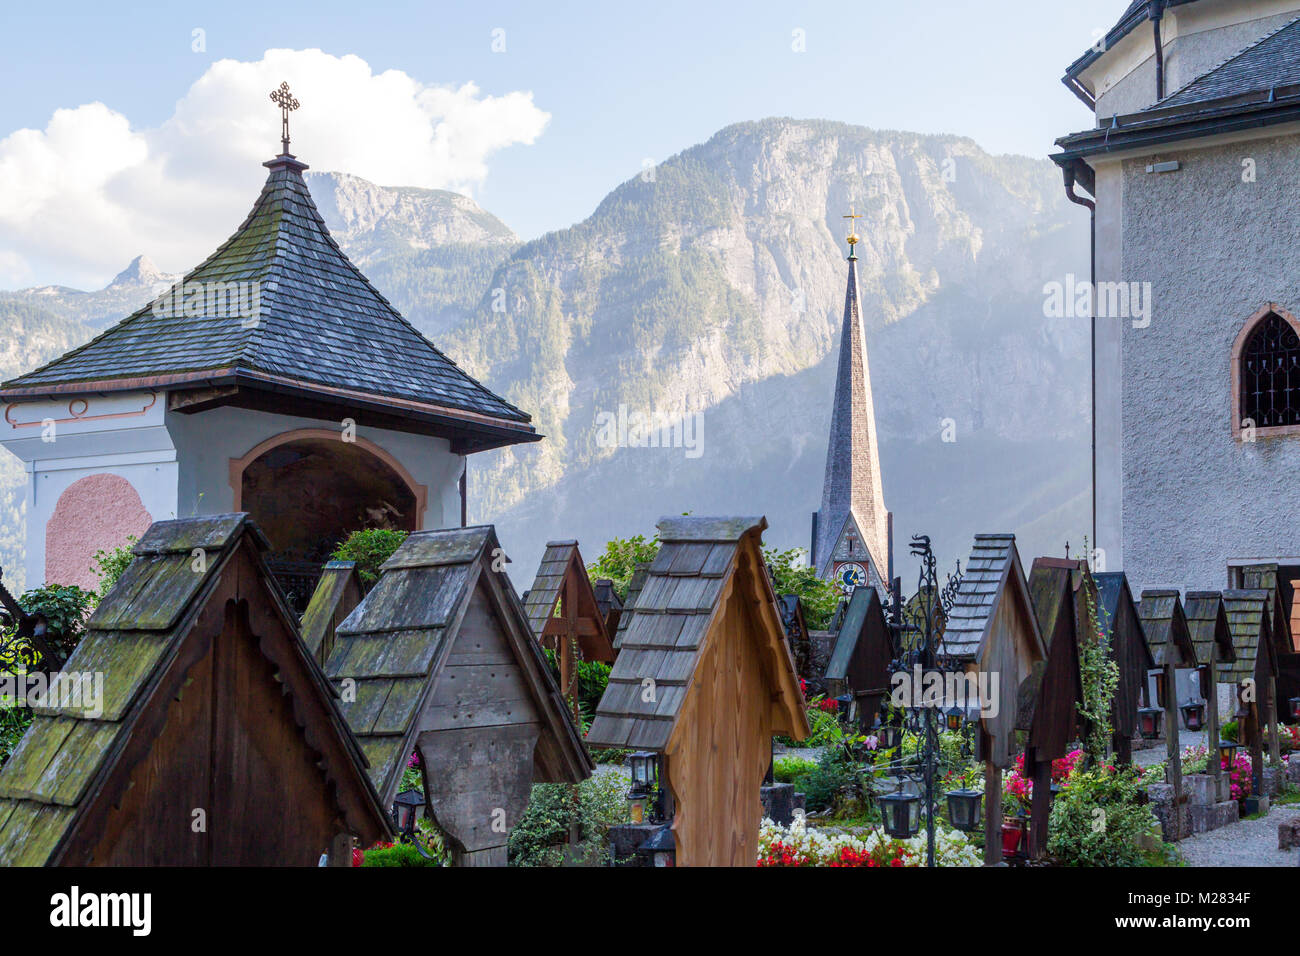 Landscape Hallstatt Village View From Beinhaus Ossuary Garden, Also Known  As Bone House, With Historical Iconic Mountain Houses Among High Alp Mountai